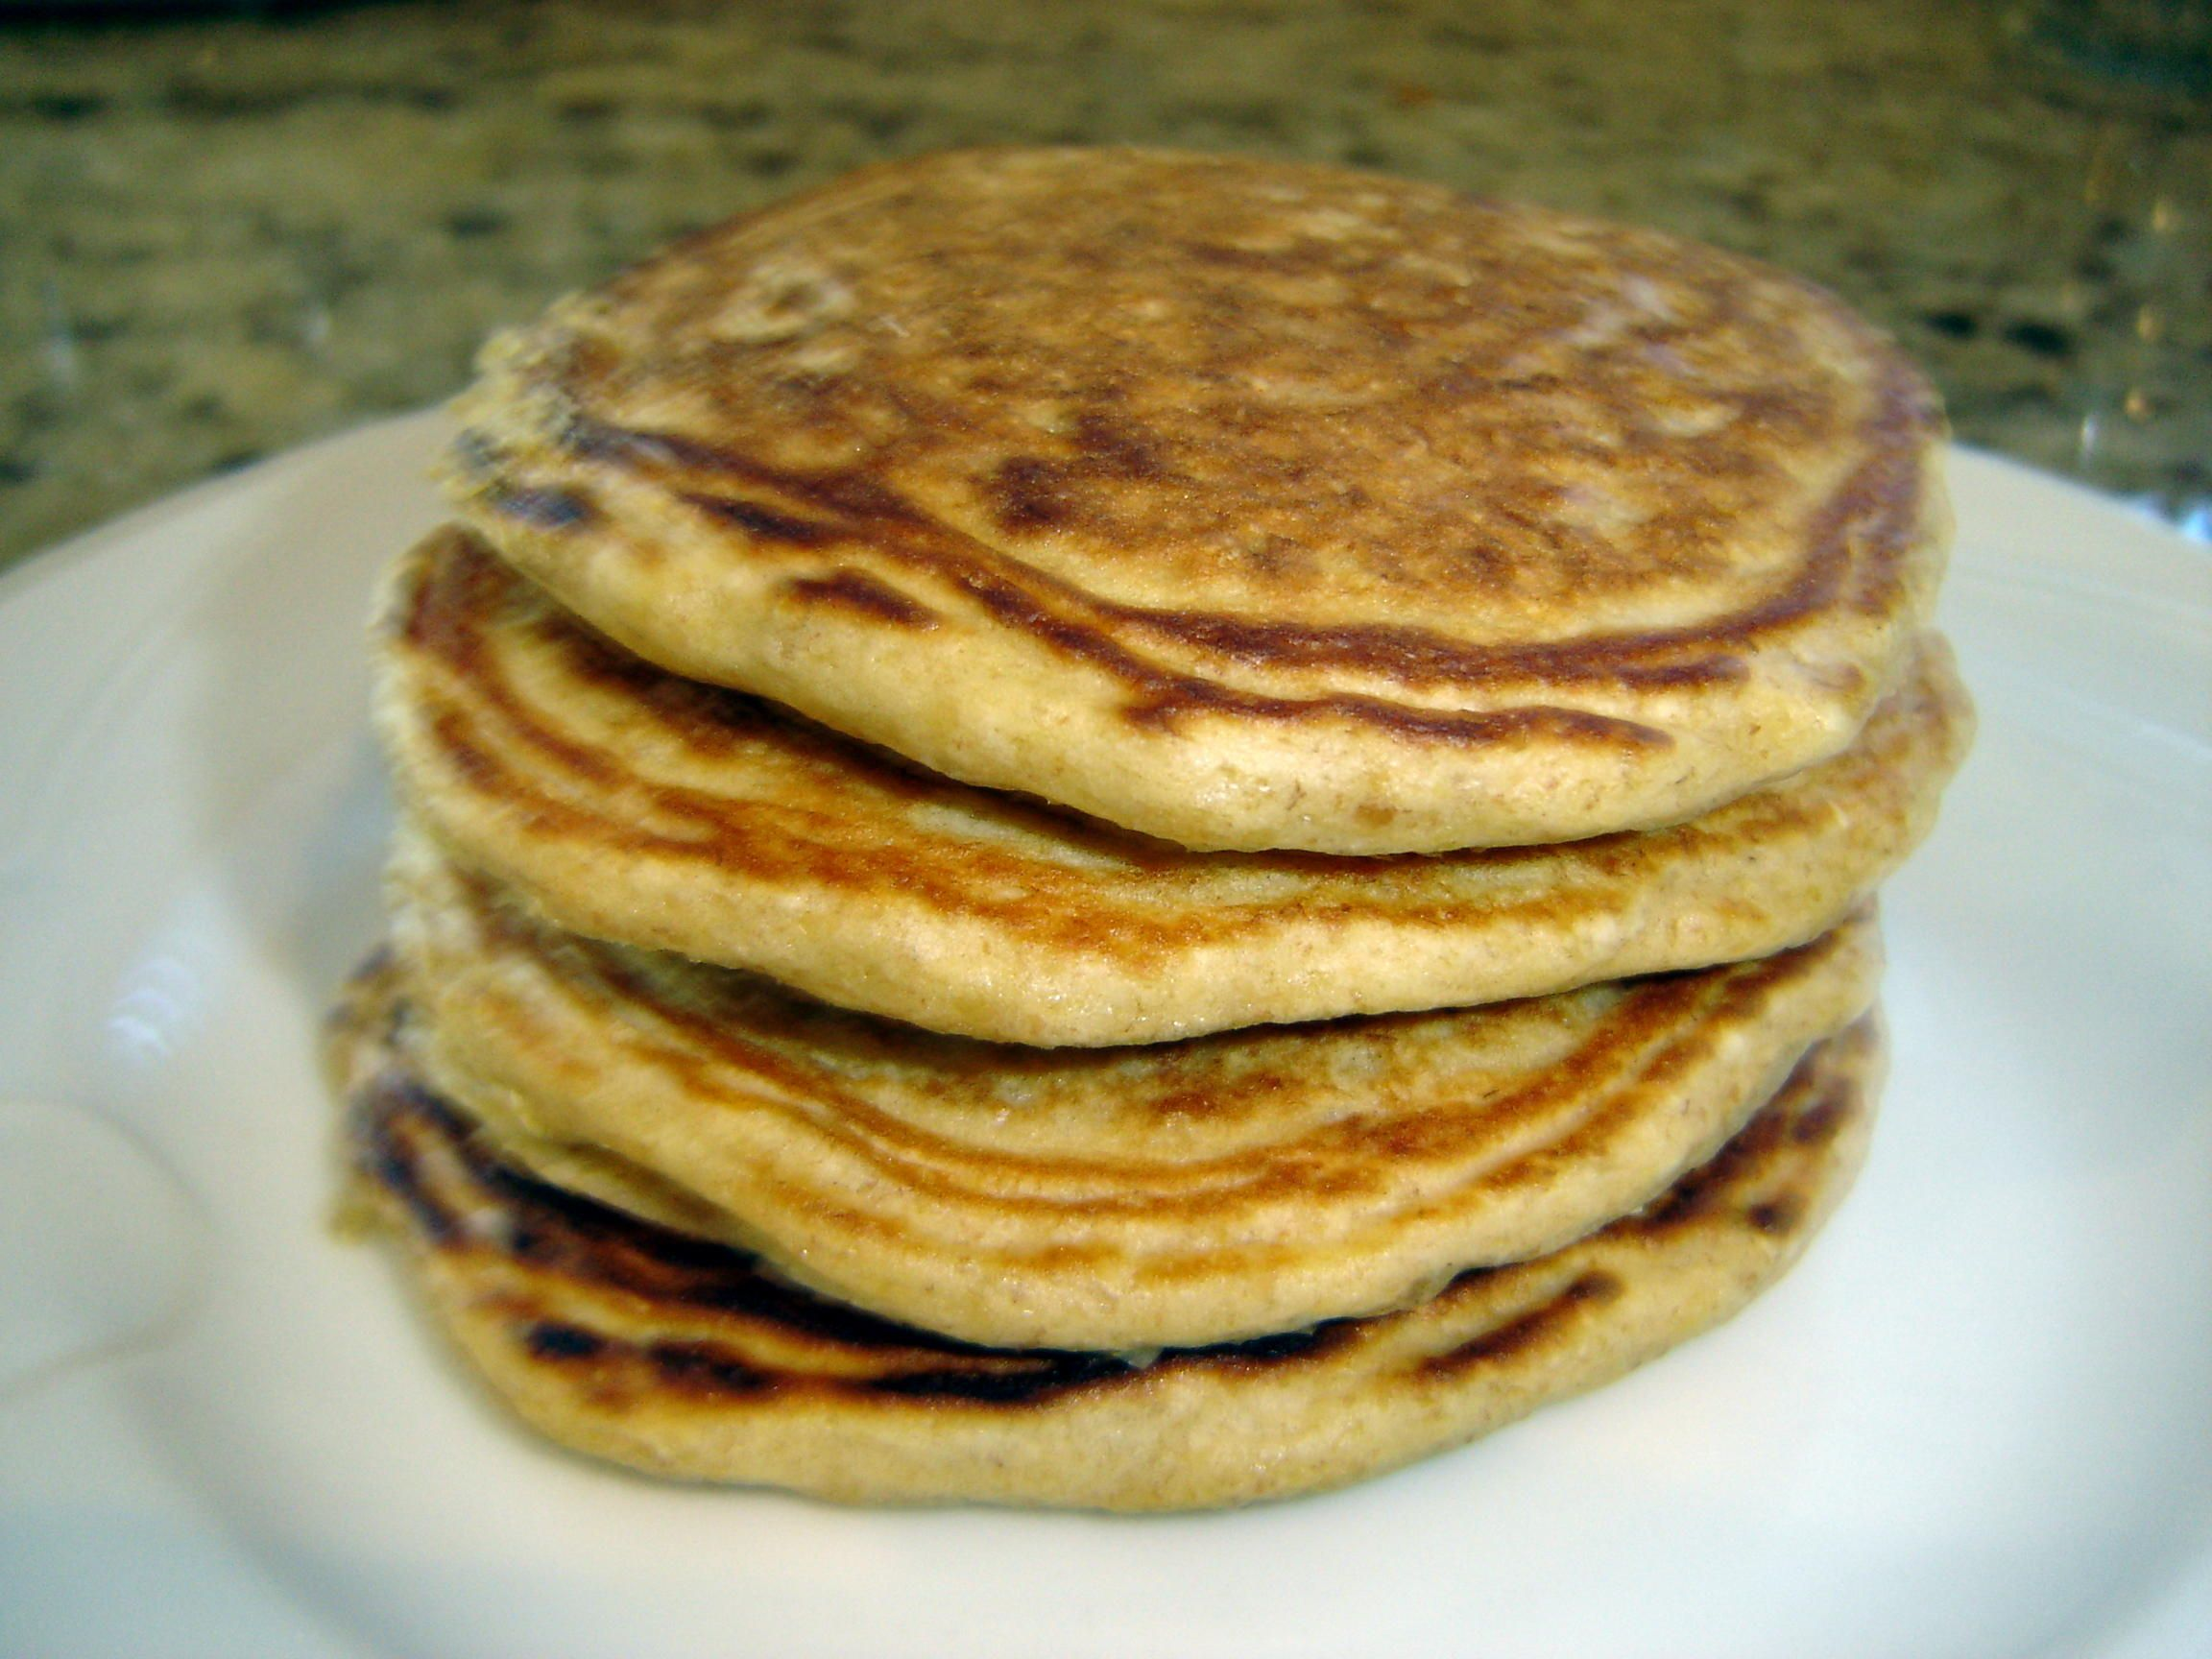 Oat and Wheat Germ Pancakes